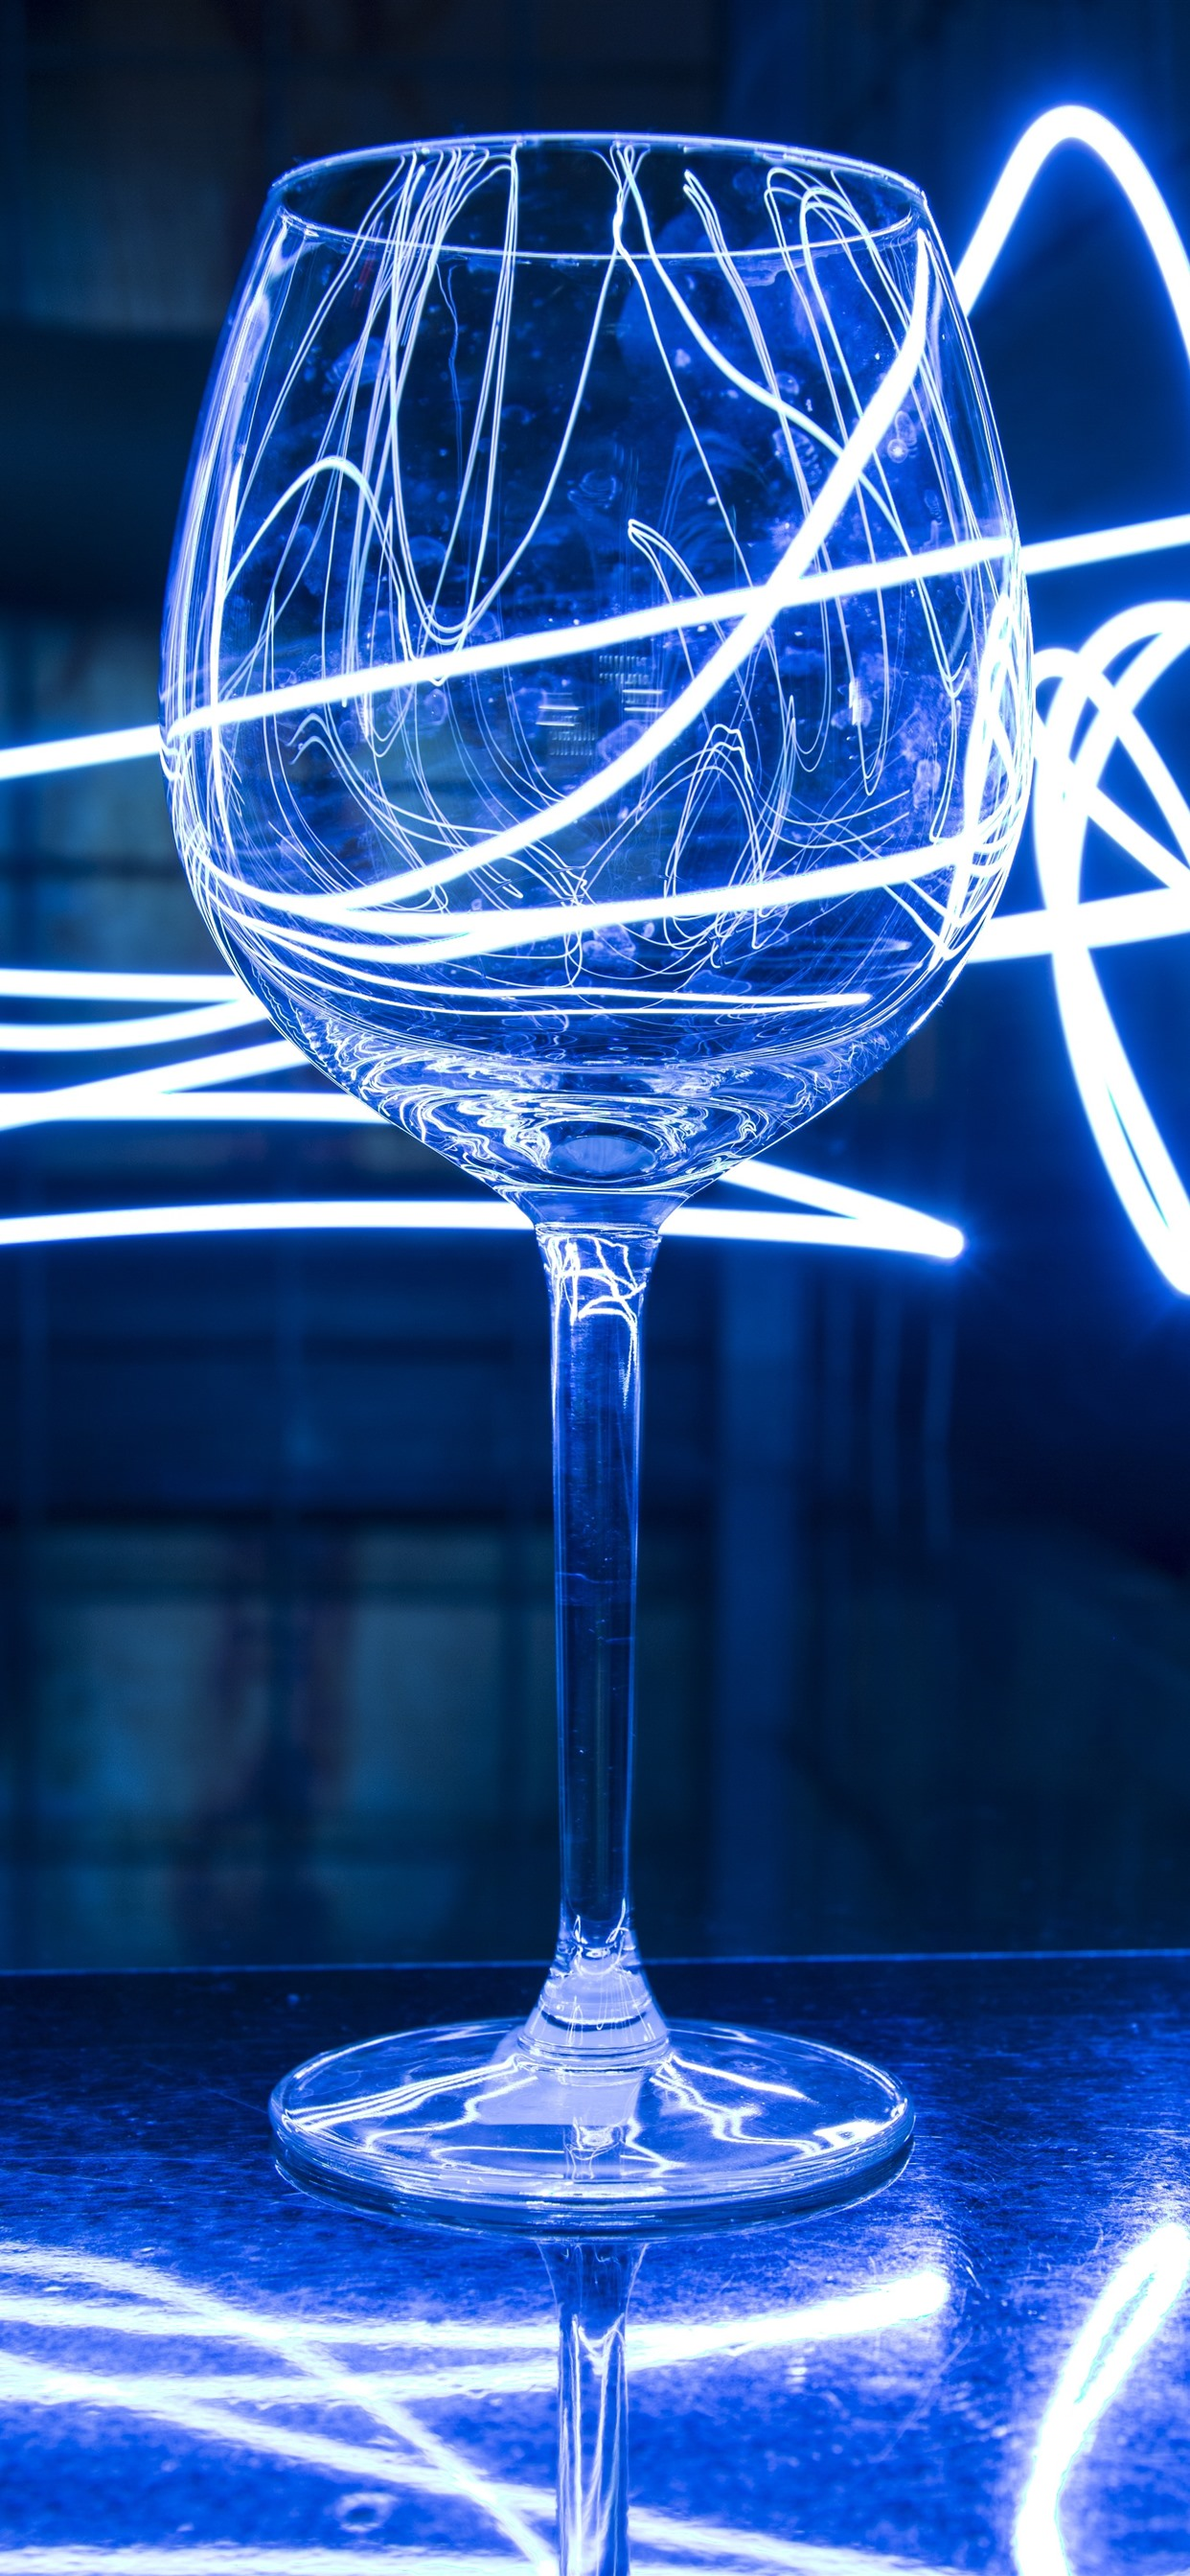 Glass Cup Neon Light 1242x2688 Iphone 11 Pro Xs Max Wallpaper Background Picture Image